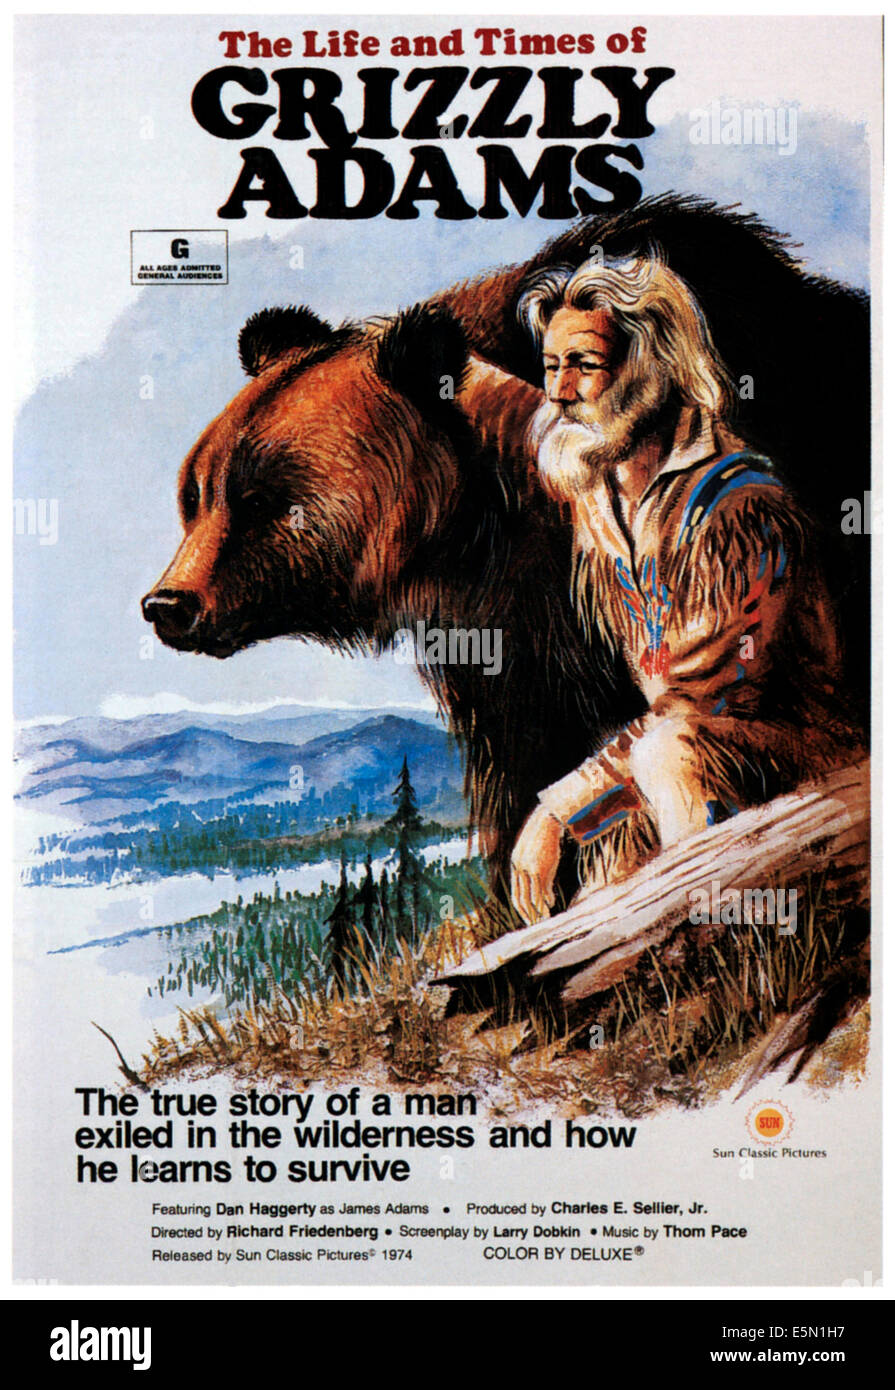 The Life Of Adventure: THE LIFE AND TIMES OF GRIZZLY ADAMS, Dan Haggerty, 1974